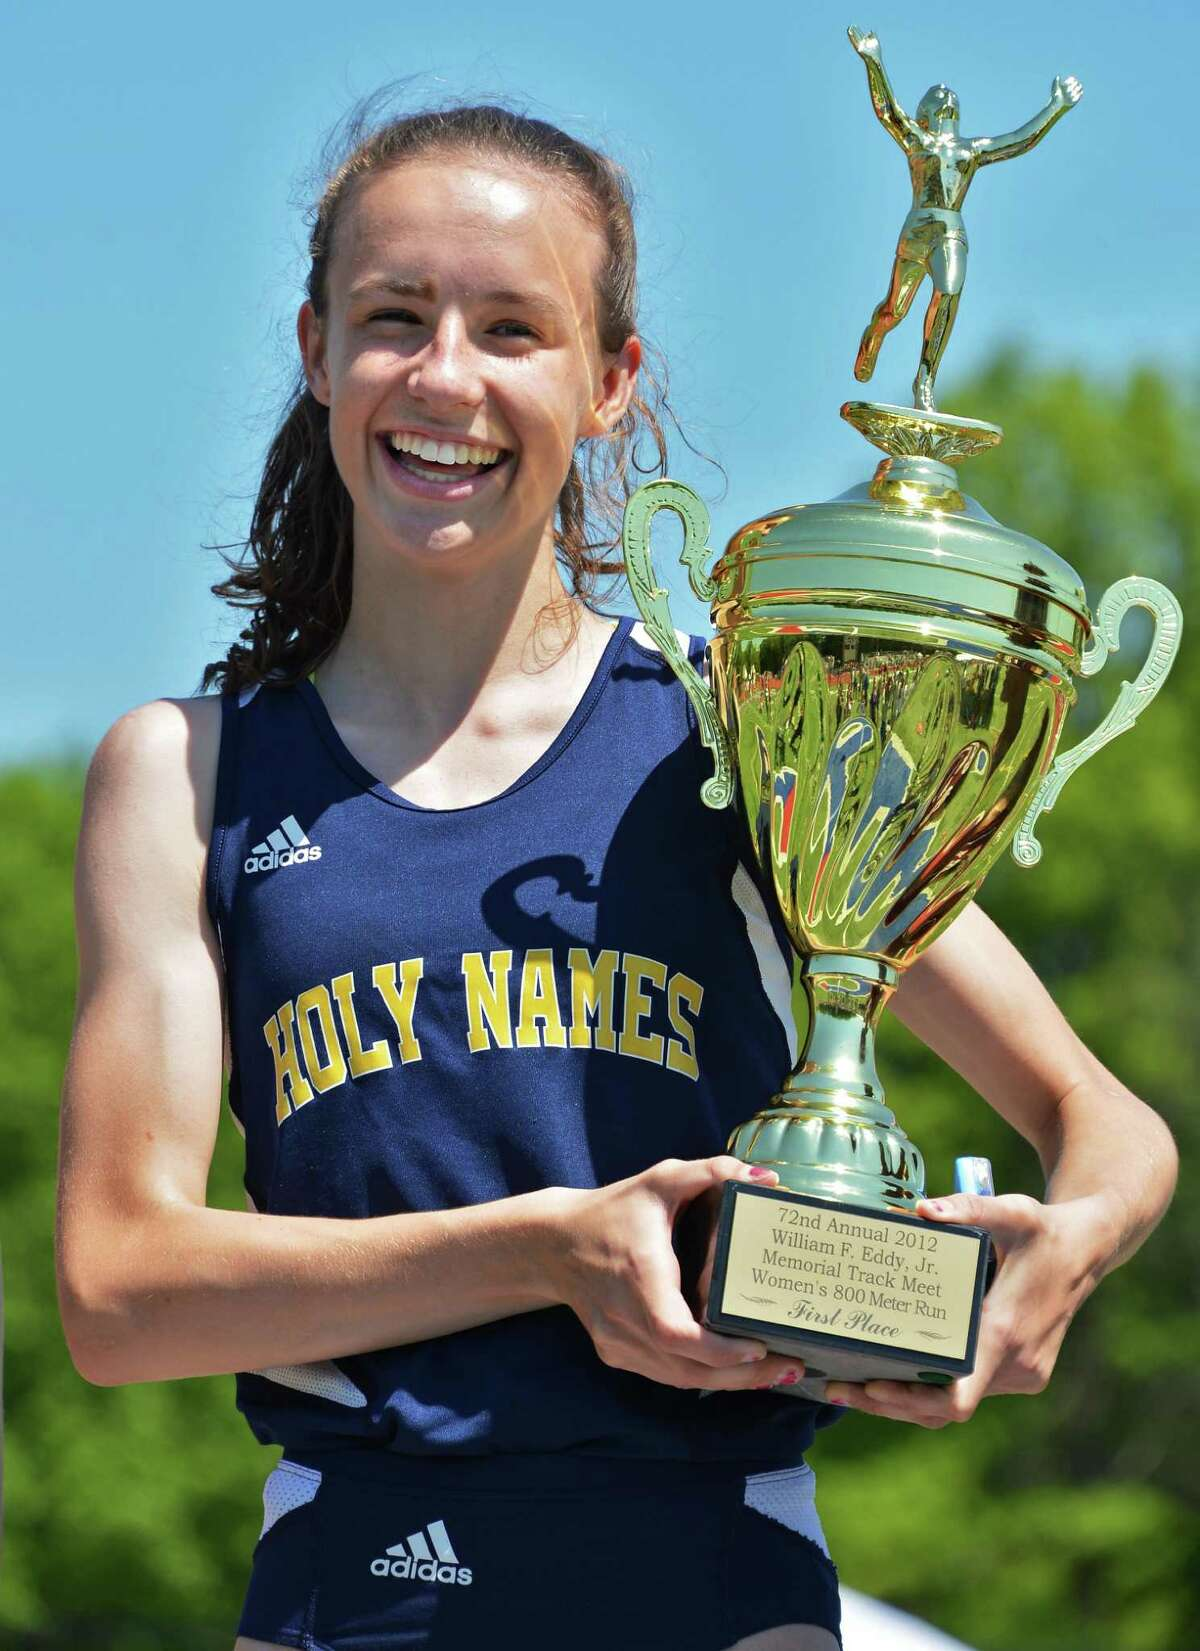 Holy Names' Leah Triller on the podium with the trophy for the girls' 800m at the Eddy Meet at Schenectady High School Saturday May 19, 2012. (John Carl D'Annibale / Times Union)